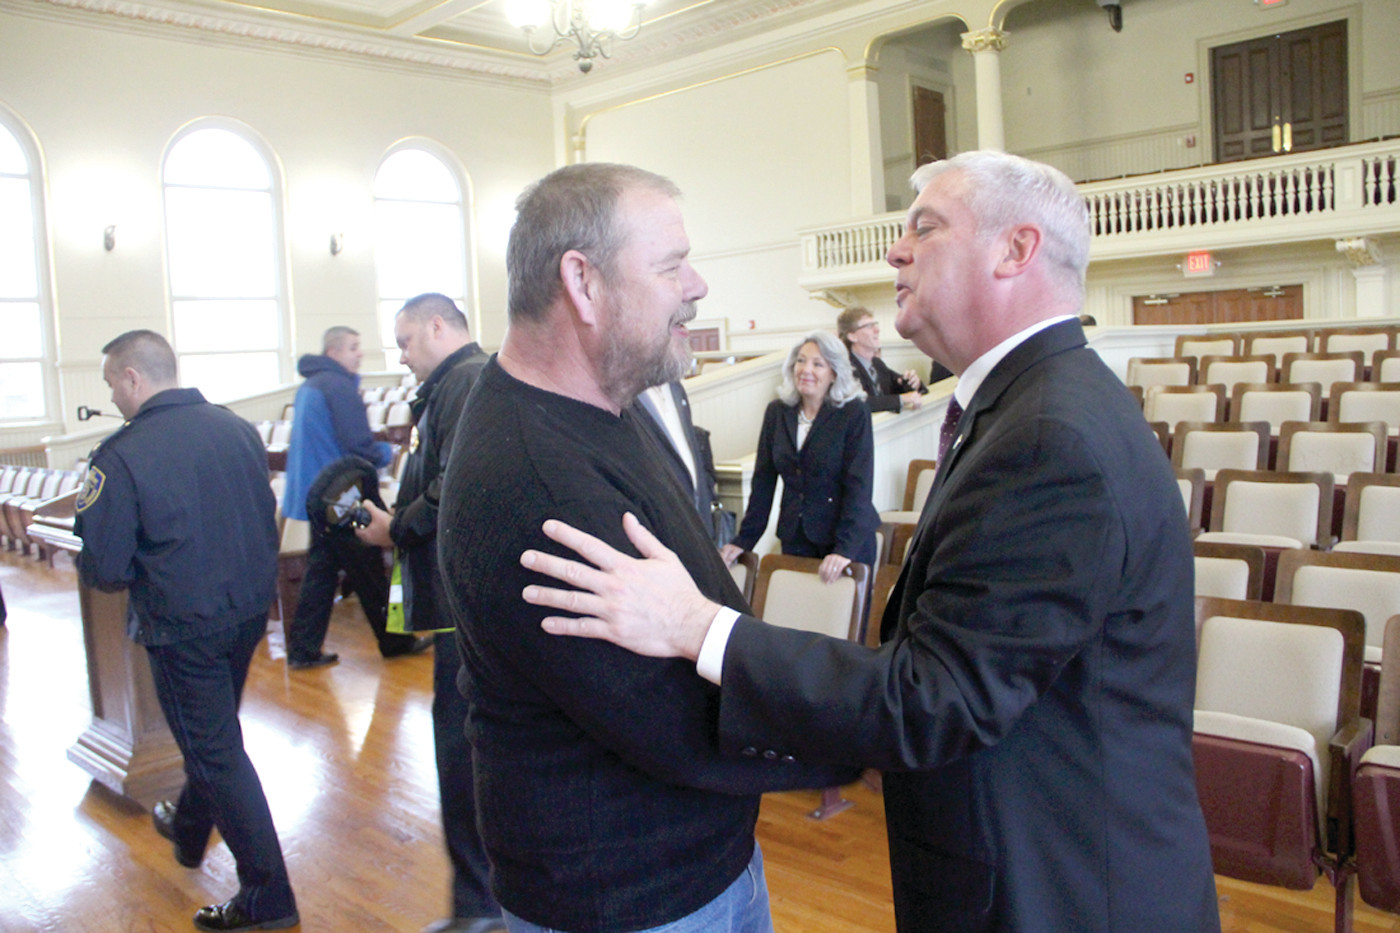 CHANGING TIMES: City director of buildings and grounds, Joe Blake, joined other municipal directors in thanking Mayor Scott Avedisian yesterday morning after he told them he would be leaving the job to become CEO of RIPTA.